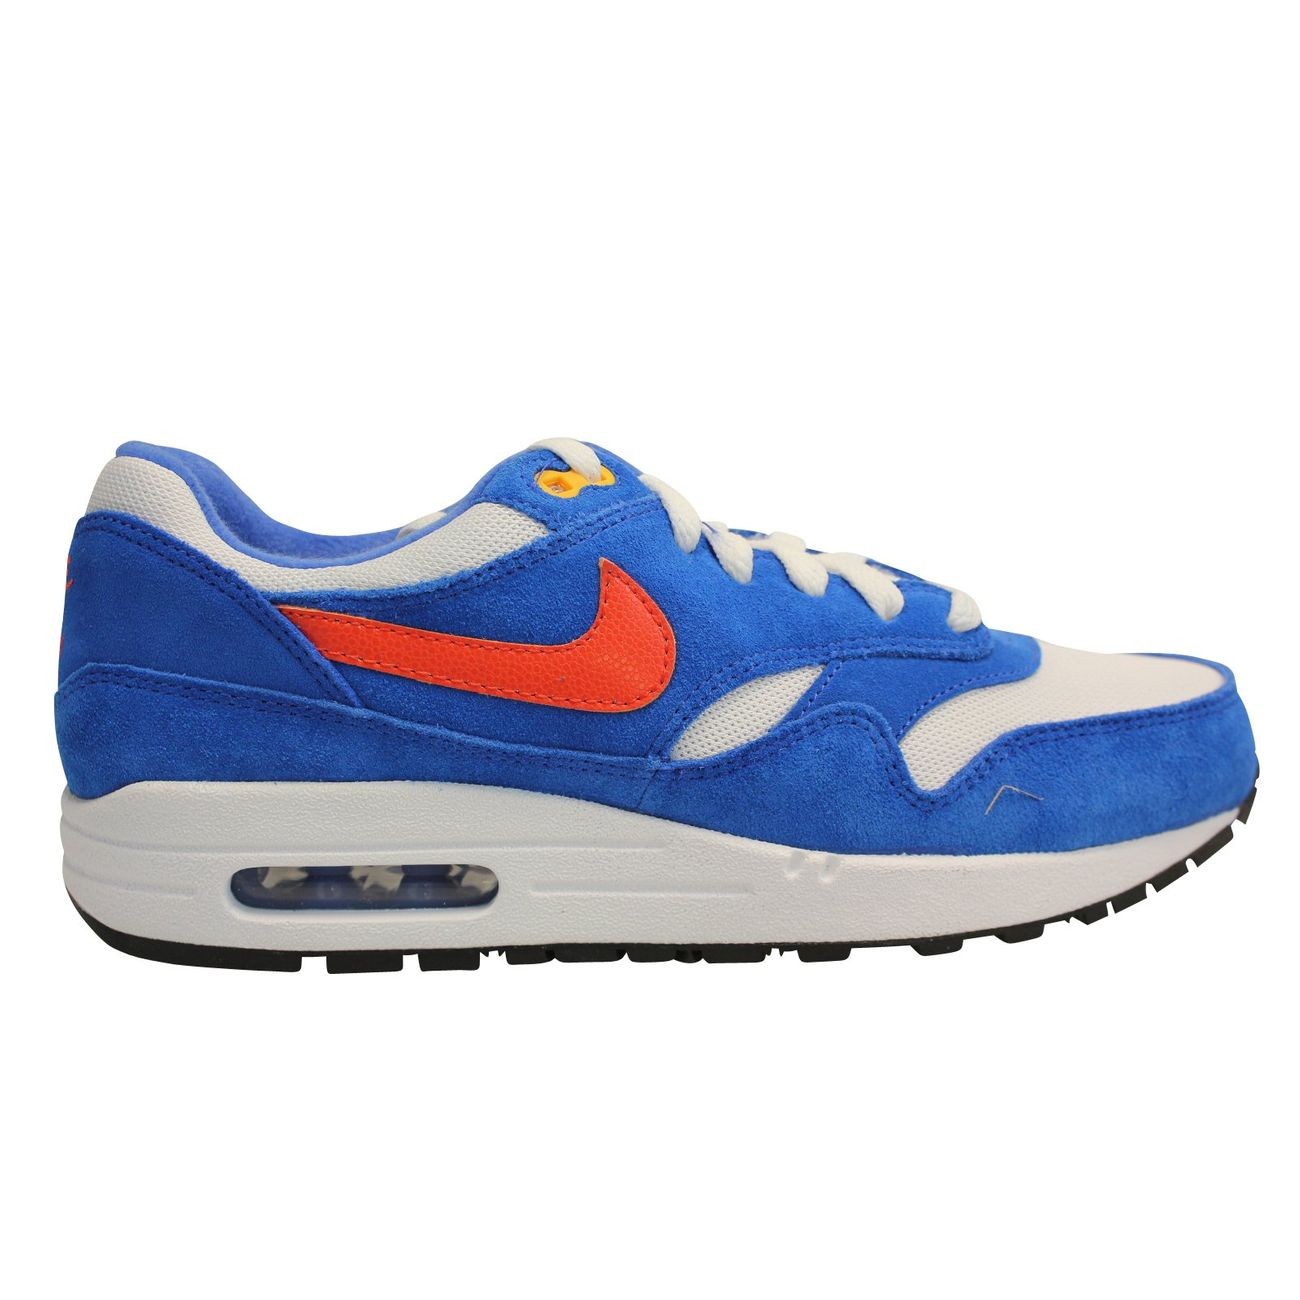 Mode- Lifestyle homme NIKE Nike Air Max 1 555766 108